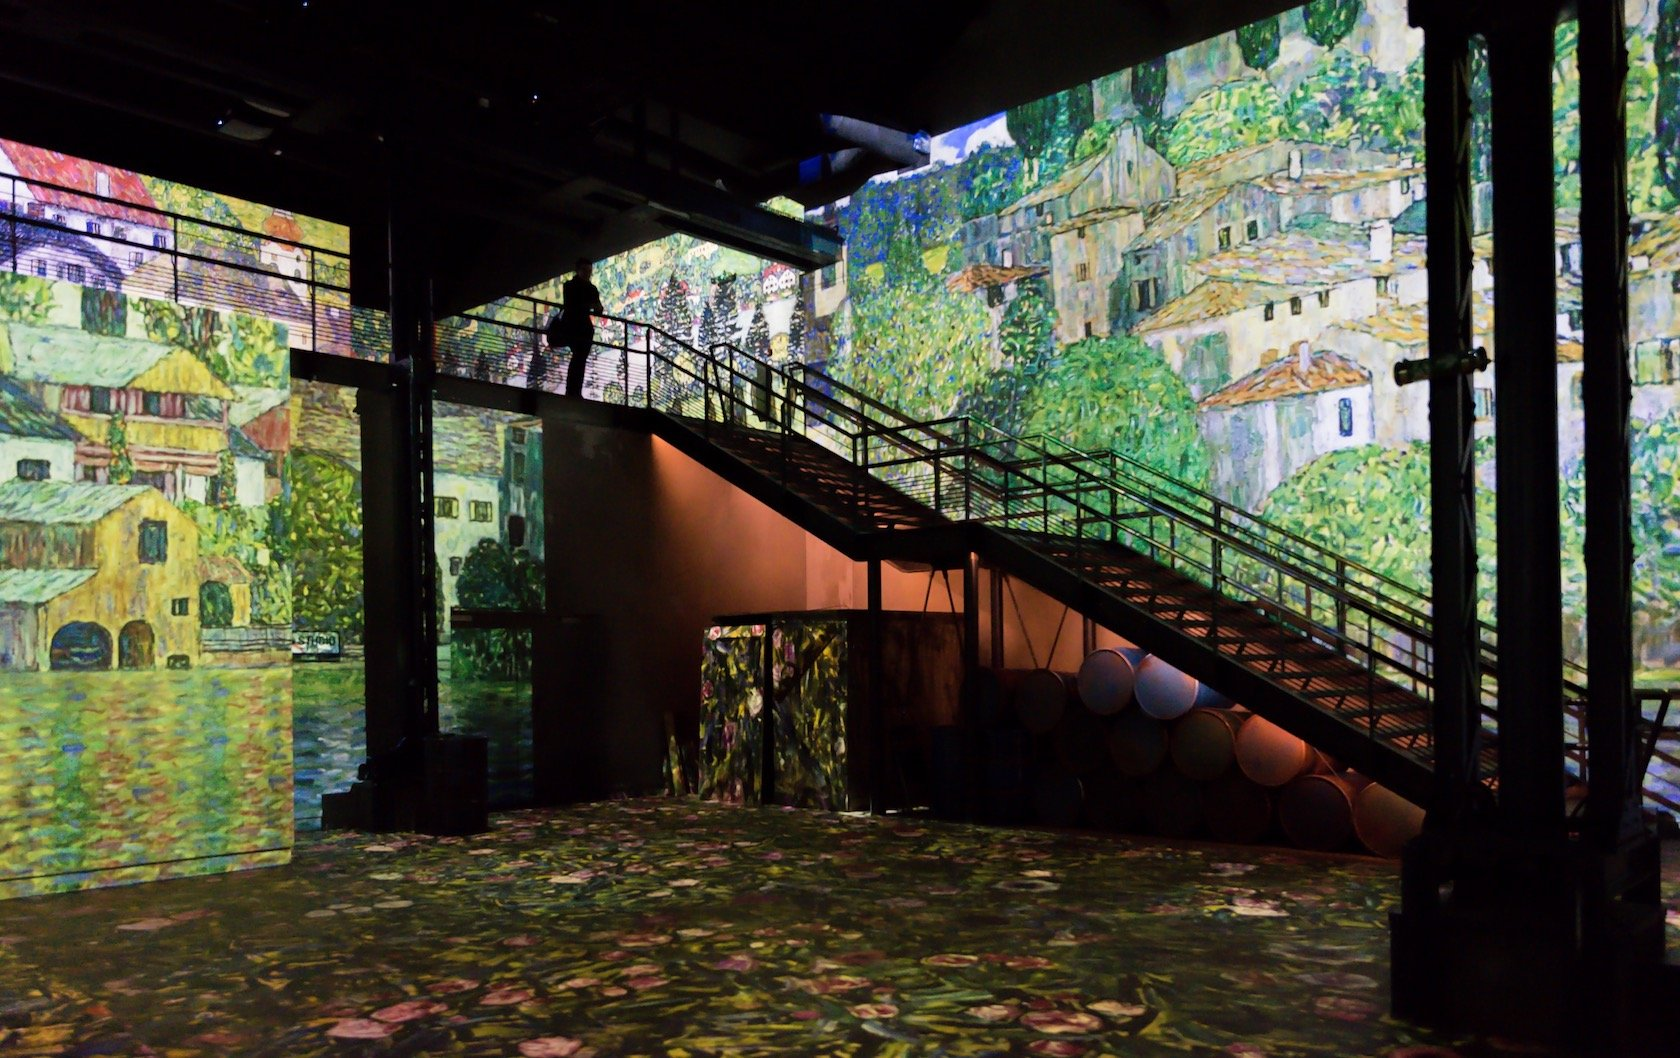 Atelier des Lumières and Musée Yves Saint Laurent: Visit these New Museums in Paris by Paris Perfect